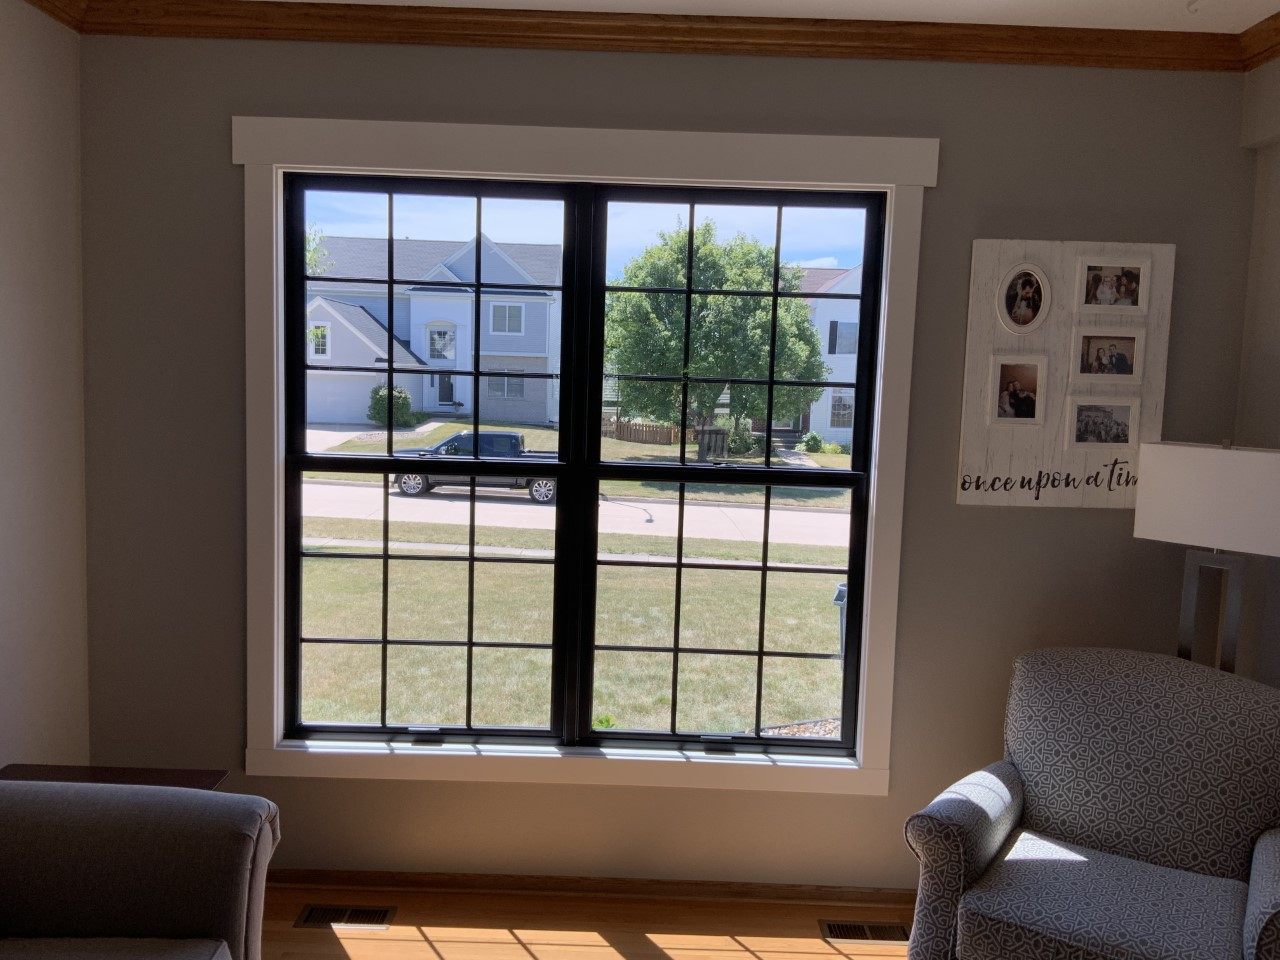 New black on black Infinity from Marvin full frame double hung window in West Des Moines Iowa